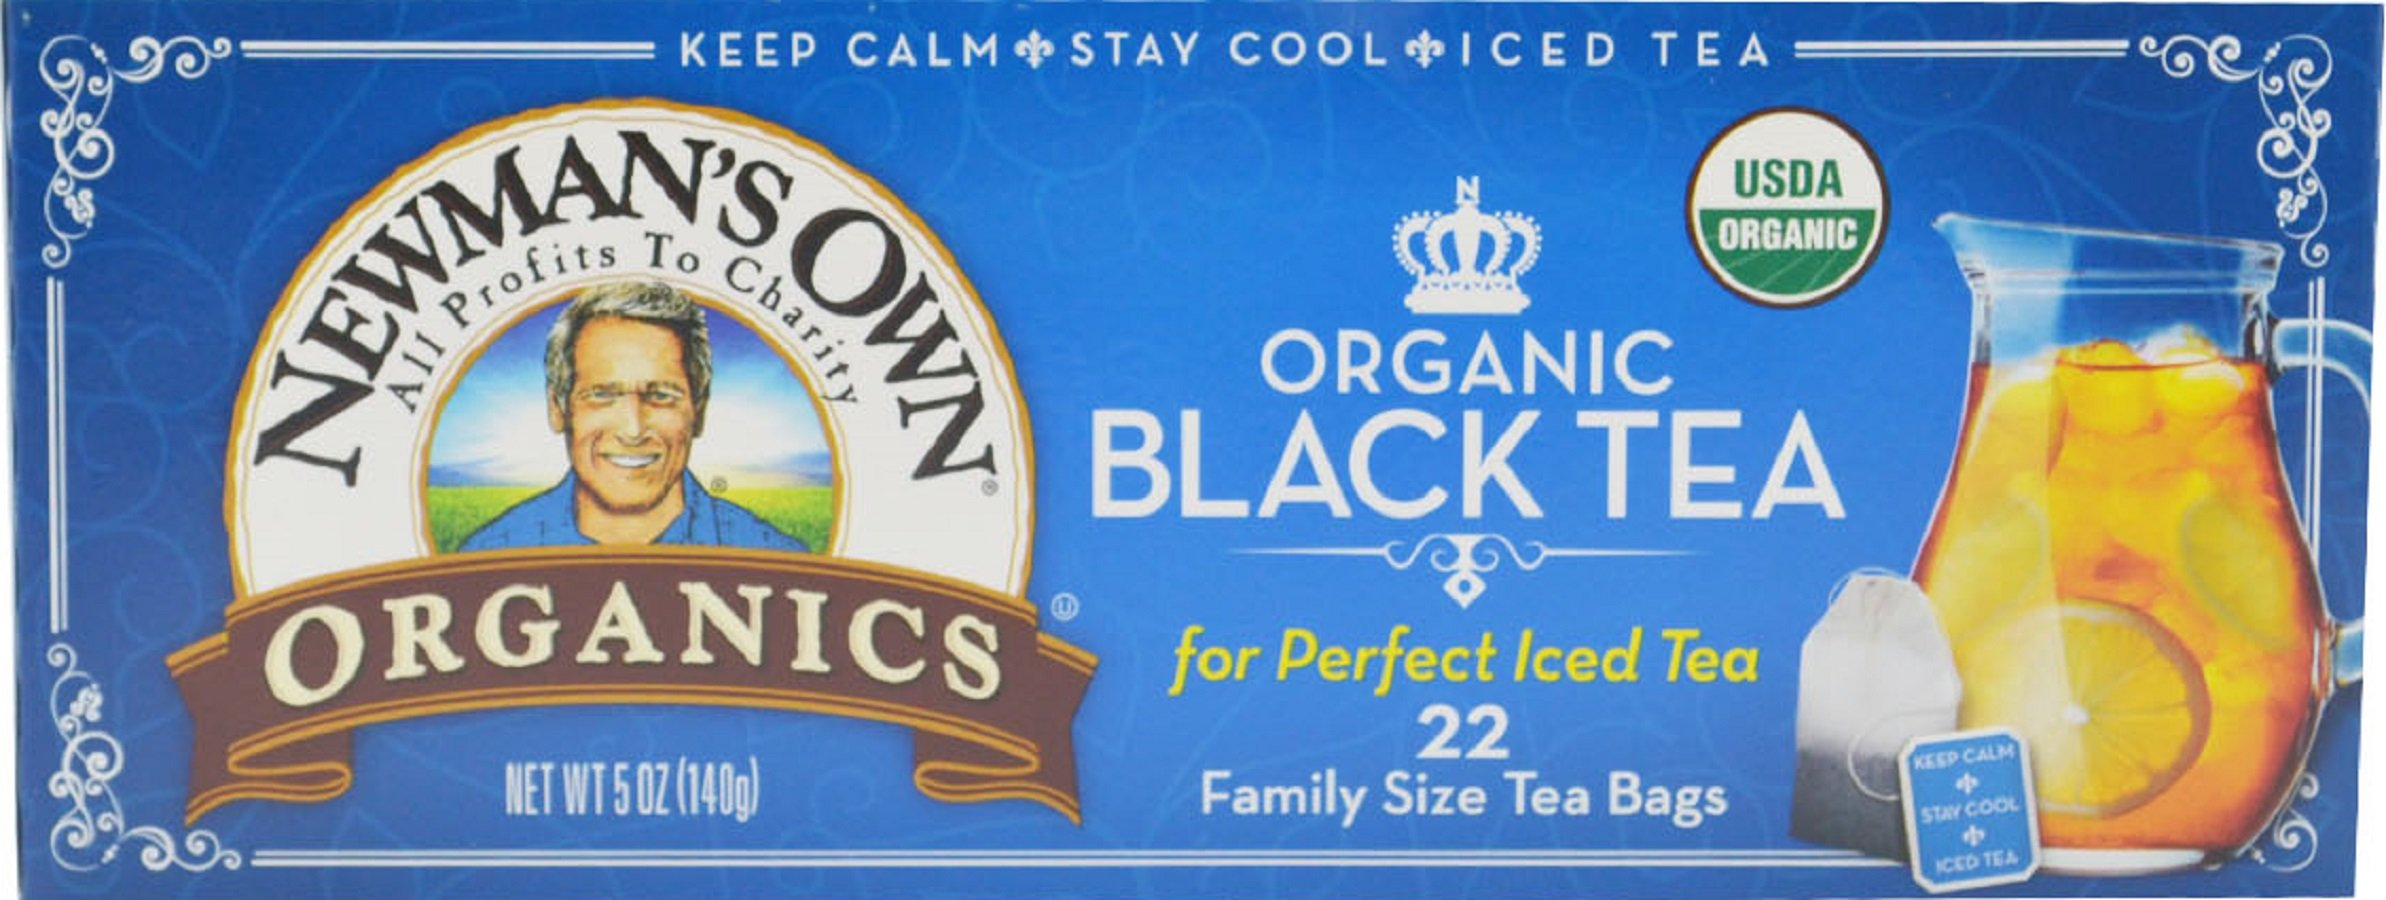 Newman's Own Organic Black Tea, 22-Count Family Size Bags, 5 oz, (Pack of 6)